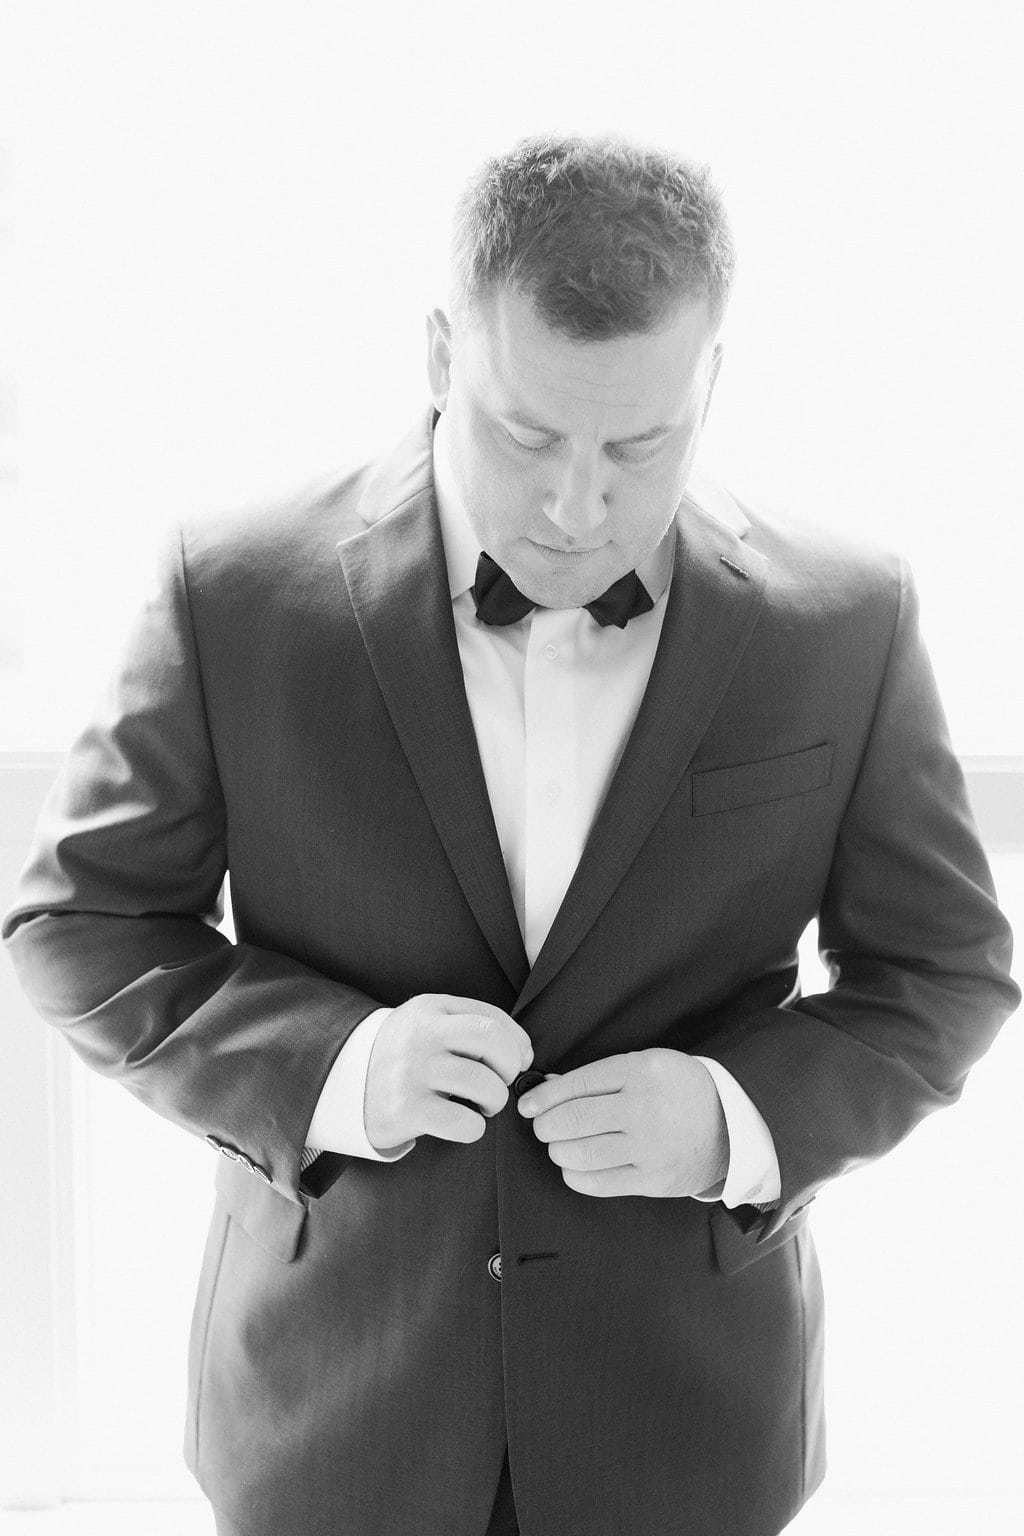 Groom buttoning up and getting dressed in his suit at the hotel - J Verno Studios Winter Wedding